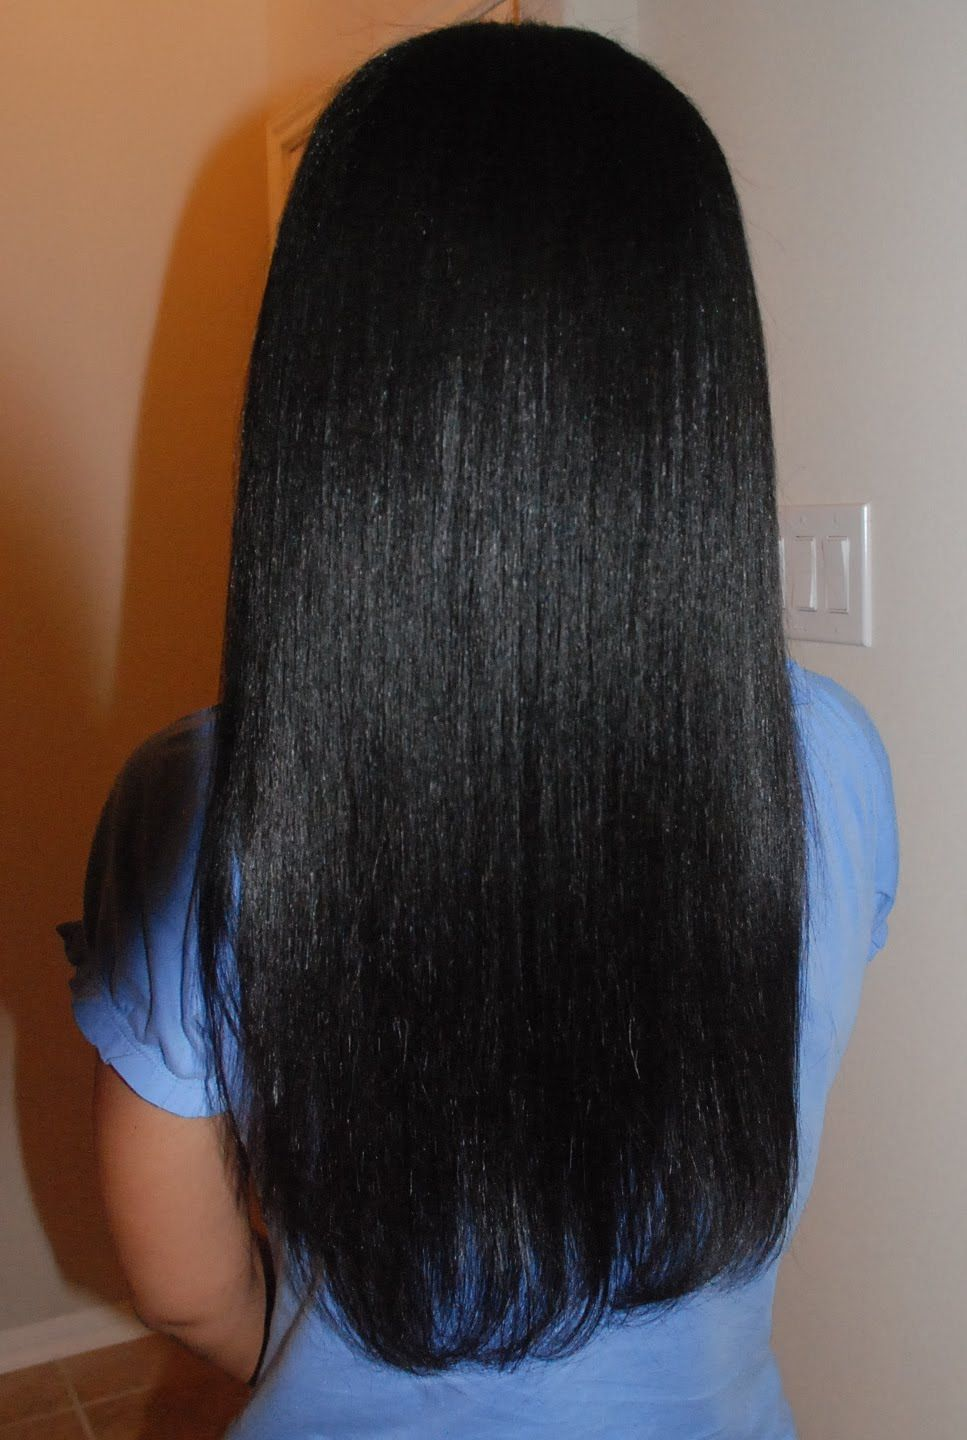 2020 New Straight Wigs Black Long Hair Straight Wig With Bangs Super Afro Wig